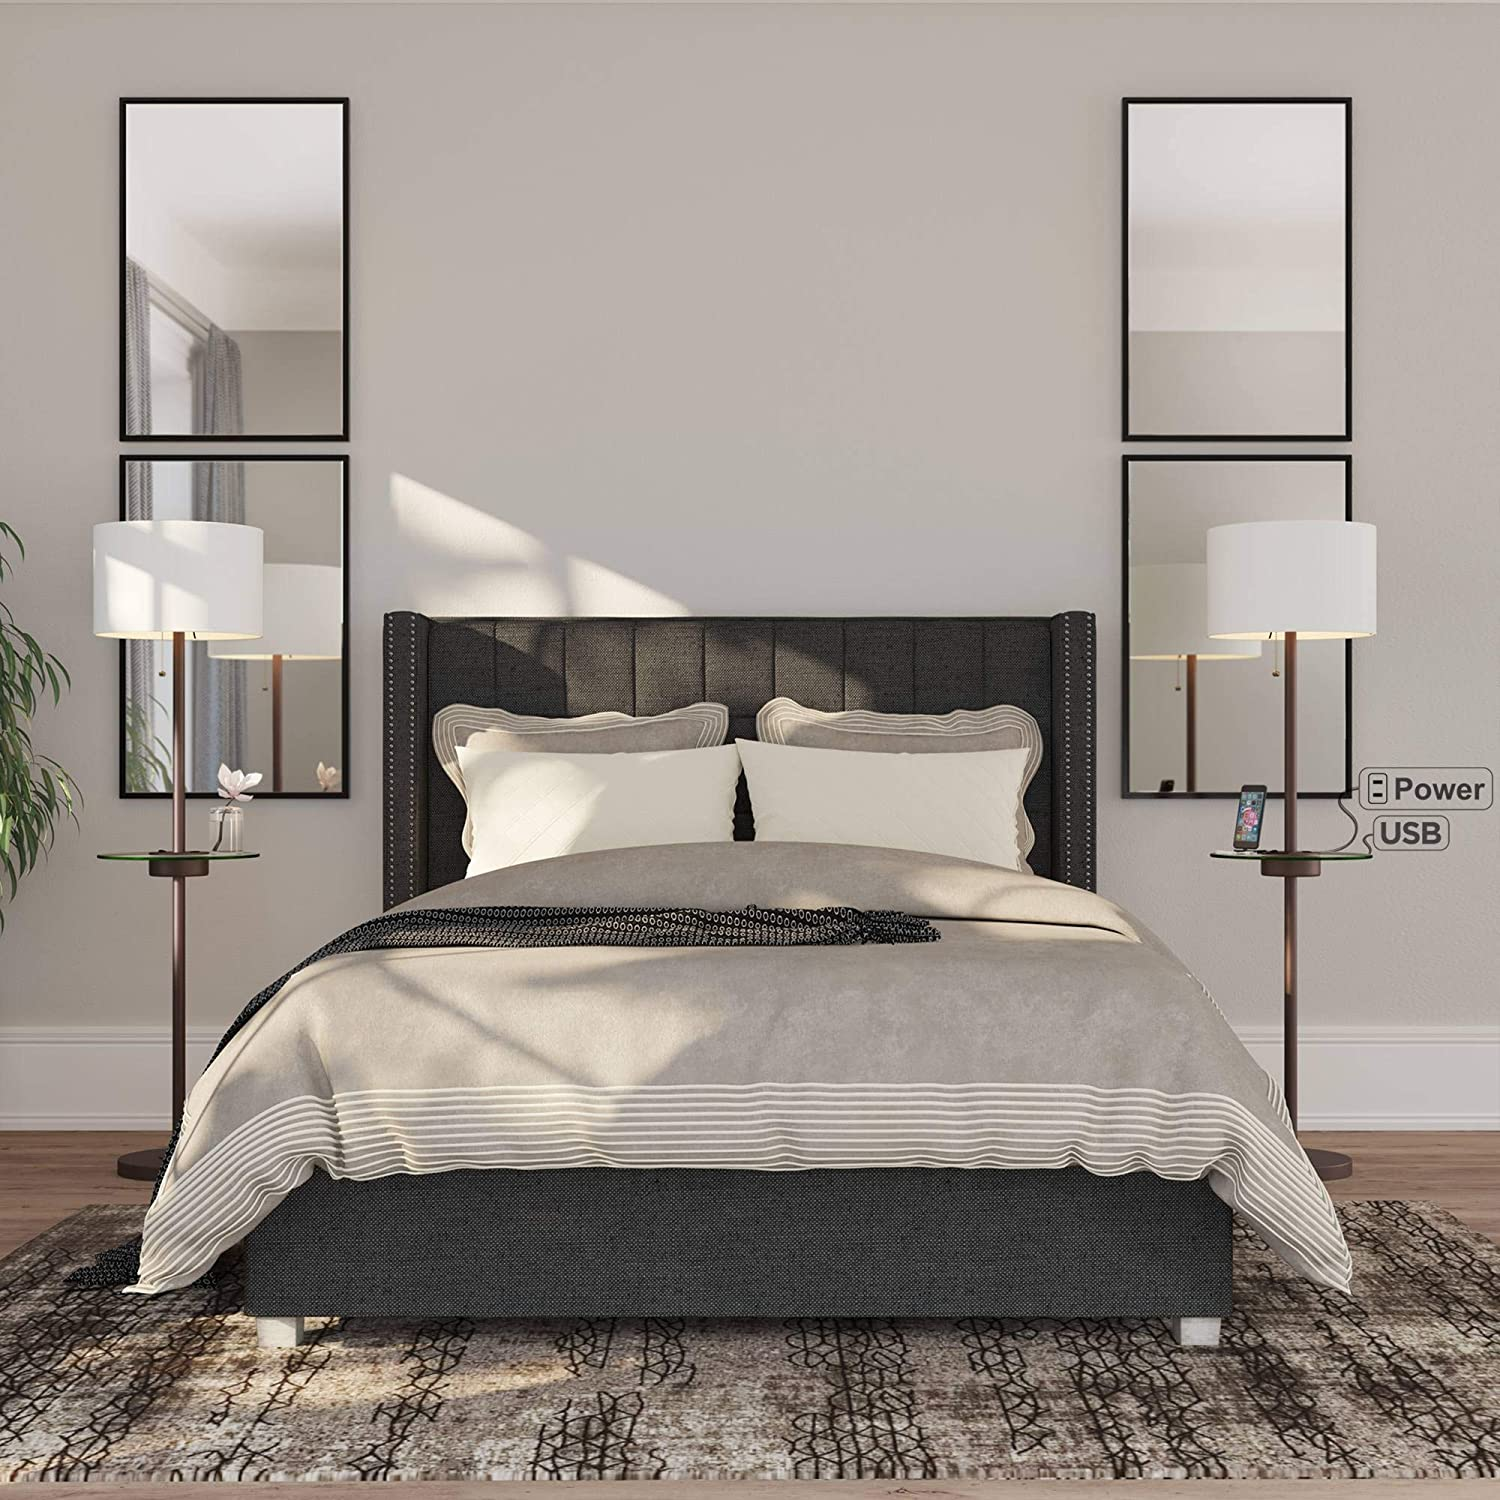 Caper Modern Contemporary Floor Lamps Set of 2 with Tray Table USB Charging Port Bronze Metal Off White Fabric Drum Shades Decor Living Room Reading House Bedroom Home Office - 360 Lighting